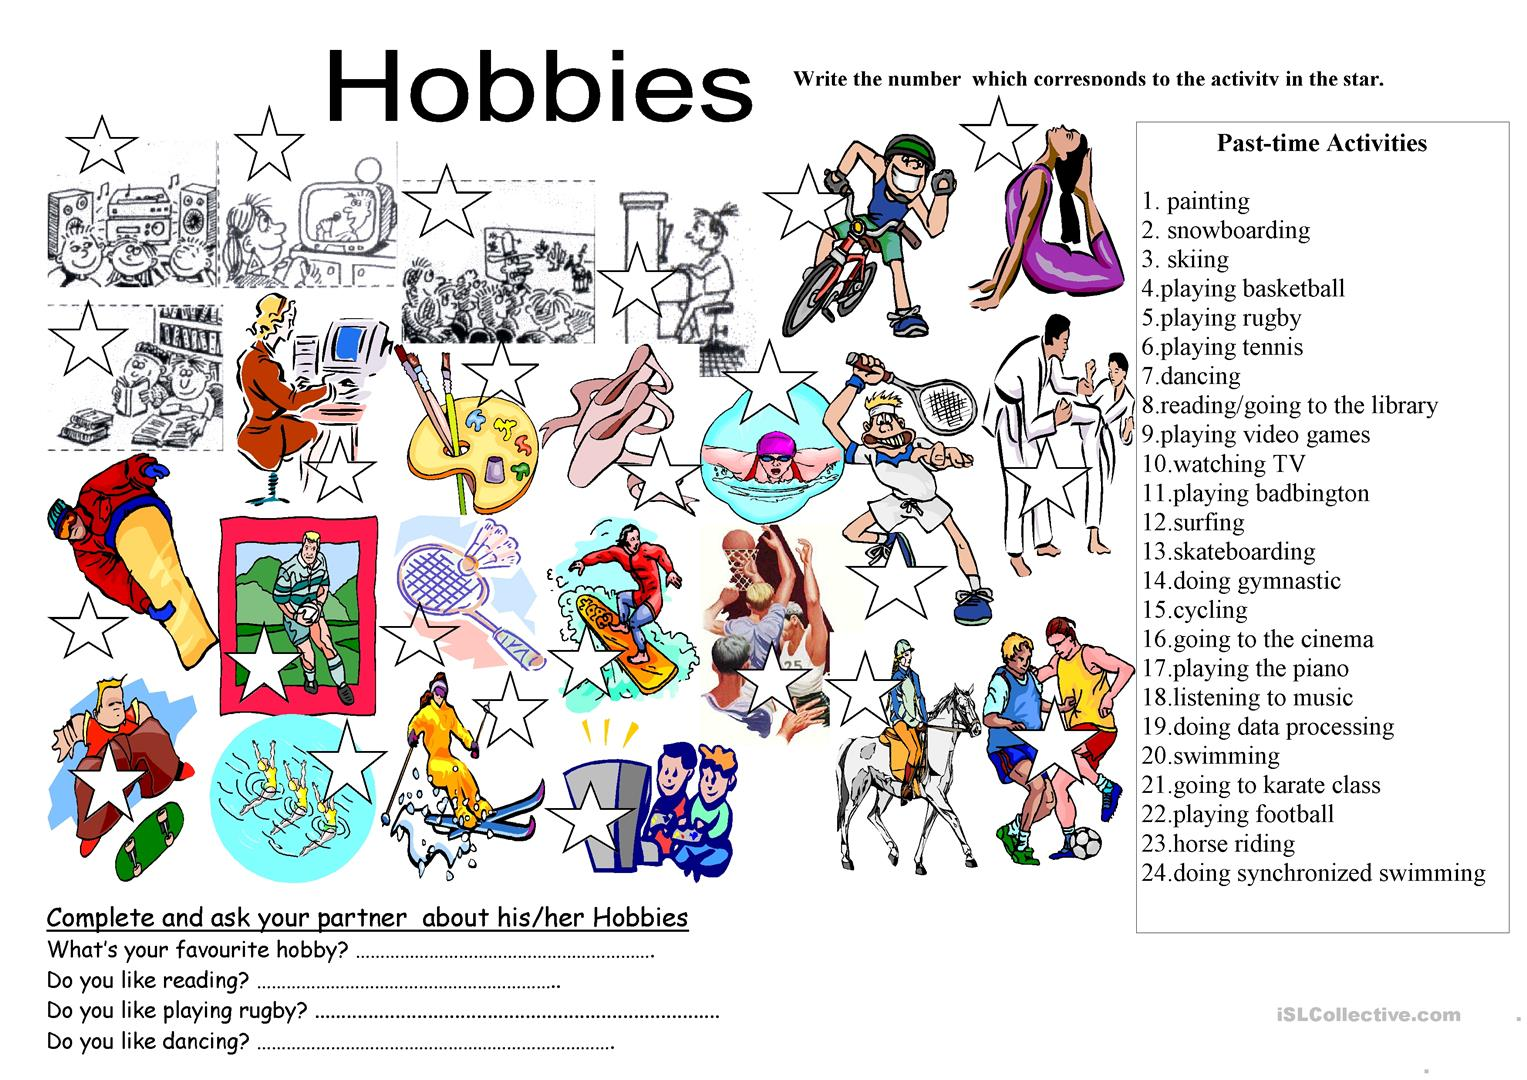 hobbies-list-with-drawings_64577_1.jpg